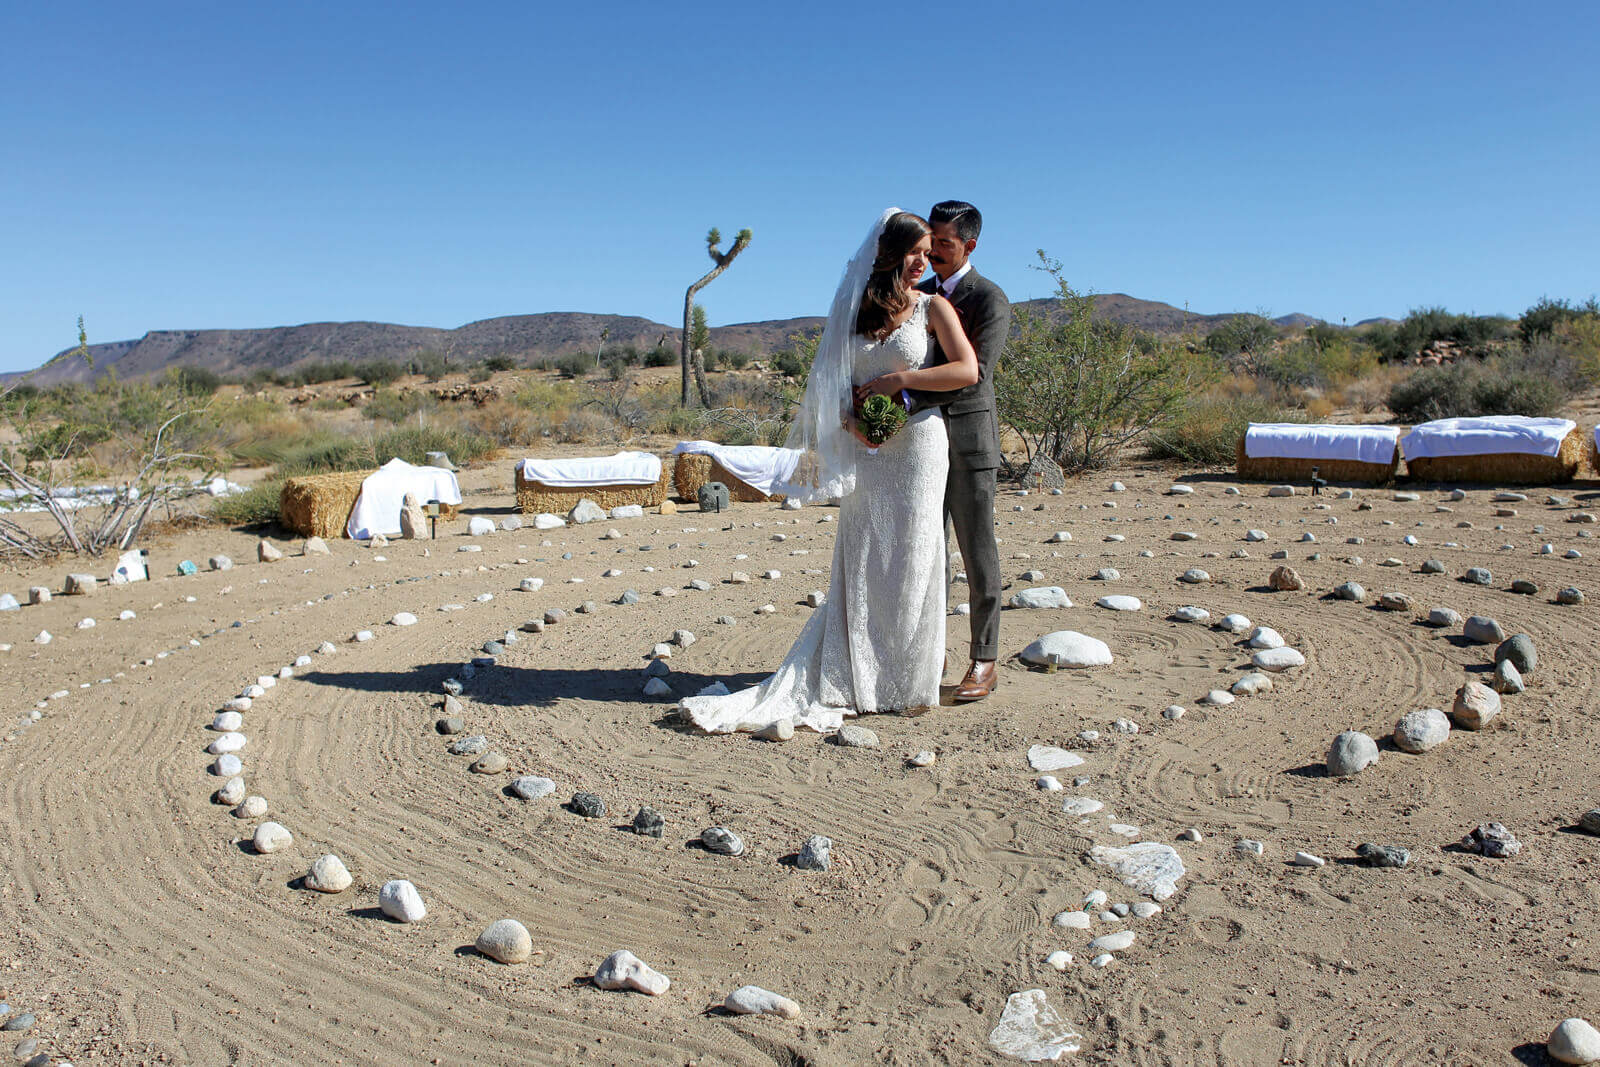 https://joinus.boutique-homes.com/storage/images/events/americas/united-states/events-at-high-desert-eden/event_venues_pioneertown_017.jpg?s=1&t=2